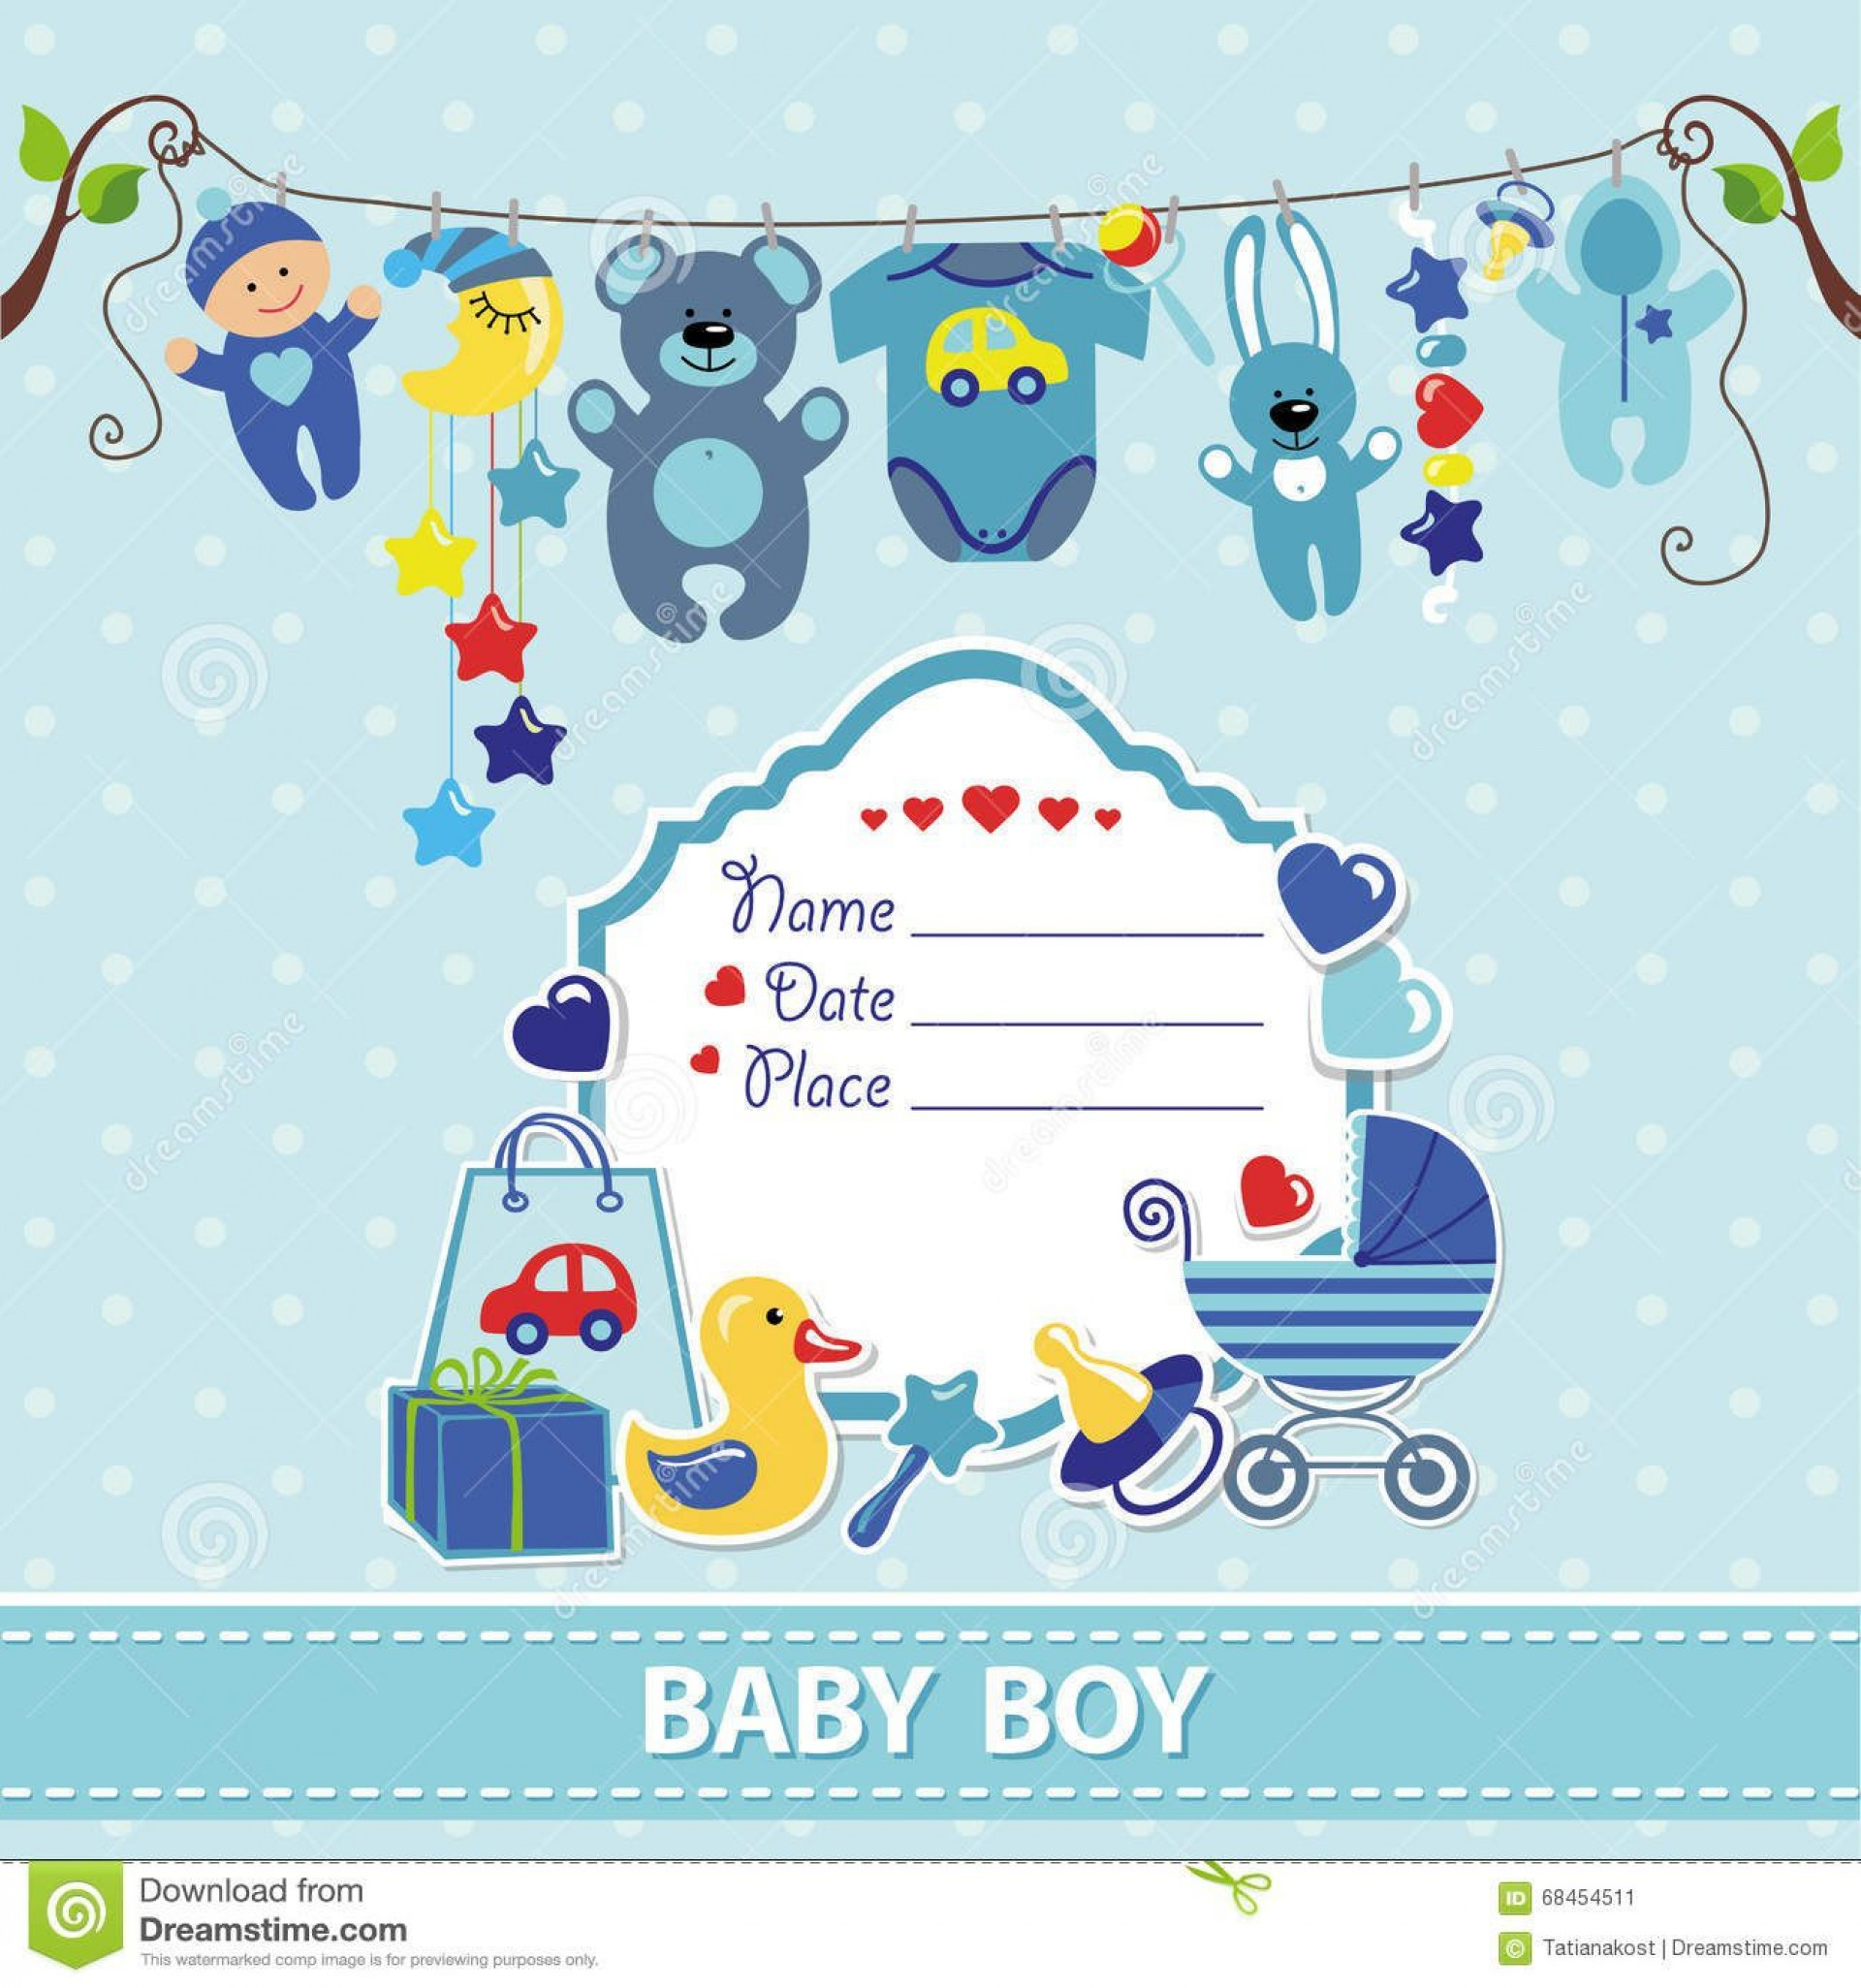 011 Unforgettable Free Baby Shower Invitation Template For Boy Idea 1920